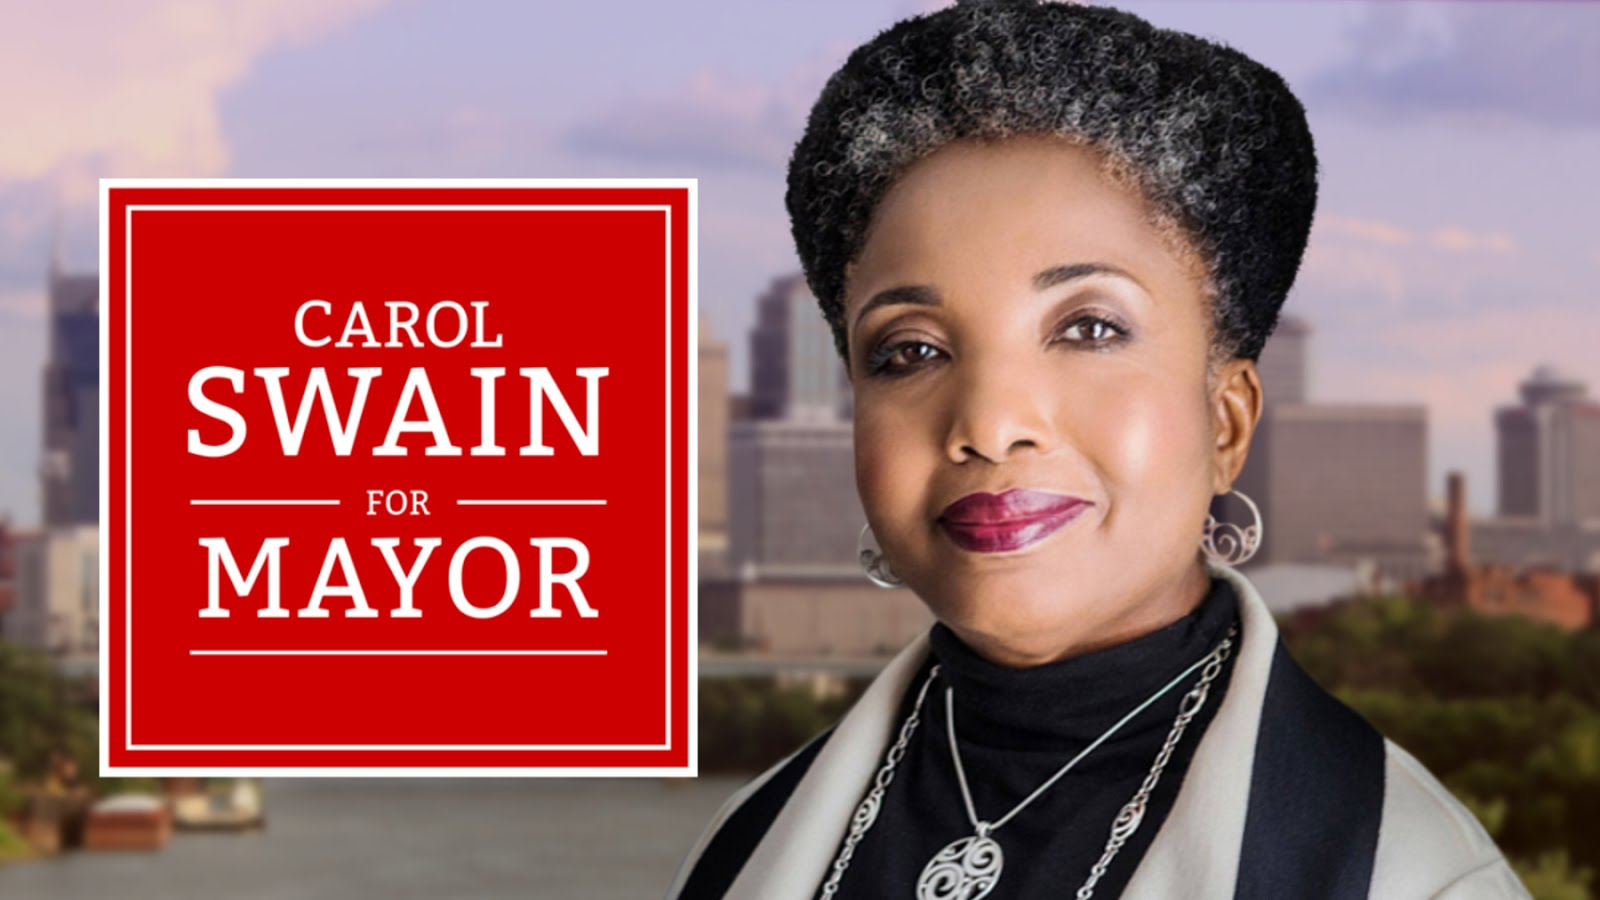 Vote Carol Swain for Mayor